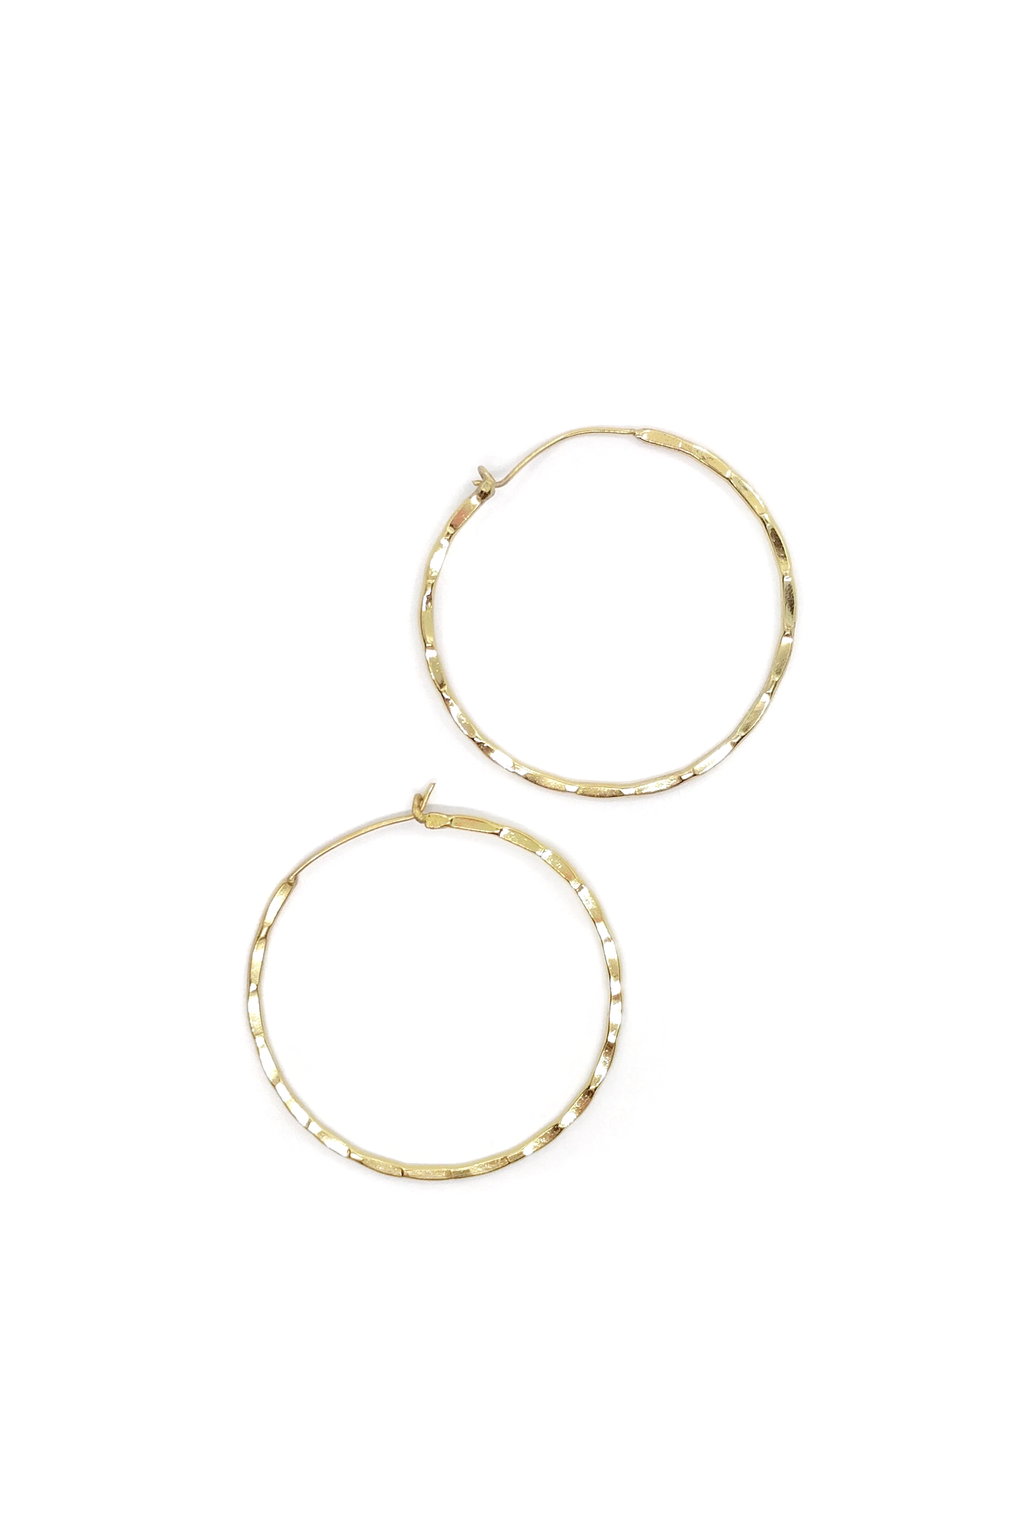 Bamboo Hoop Earrings - ROSE MADE SHOP